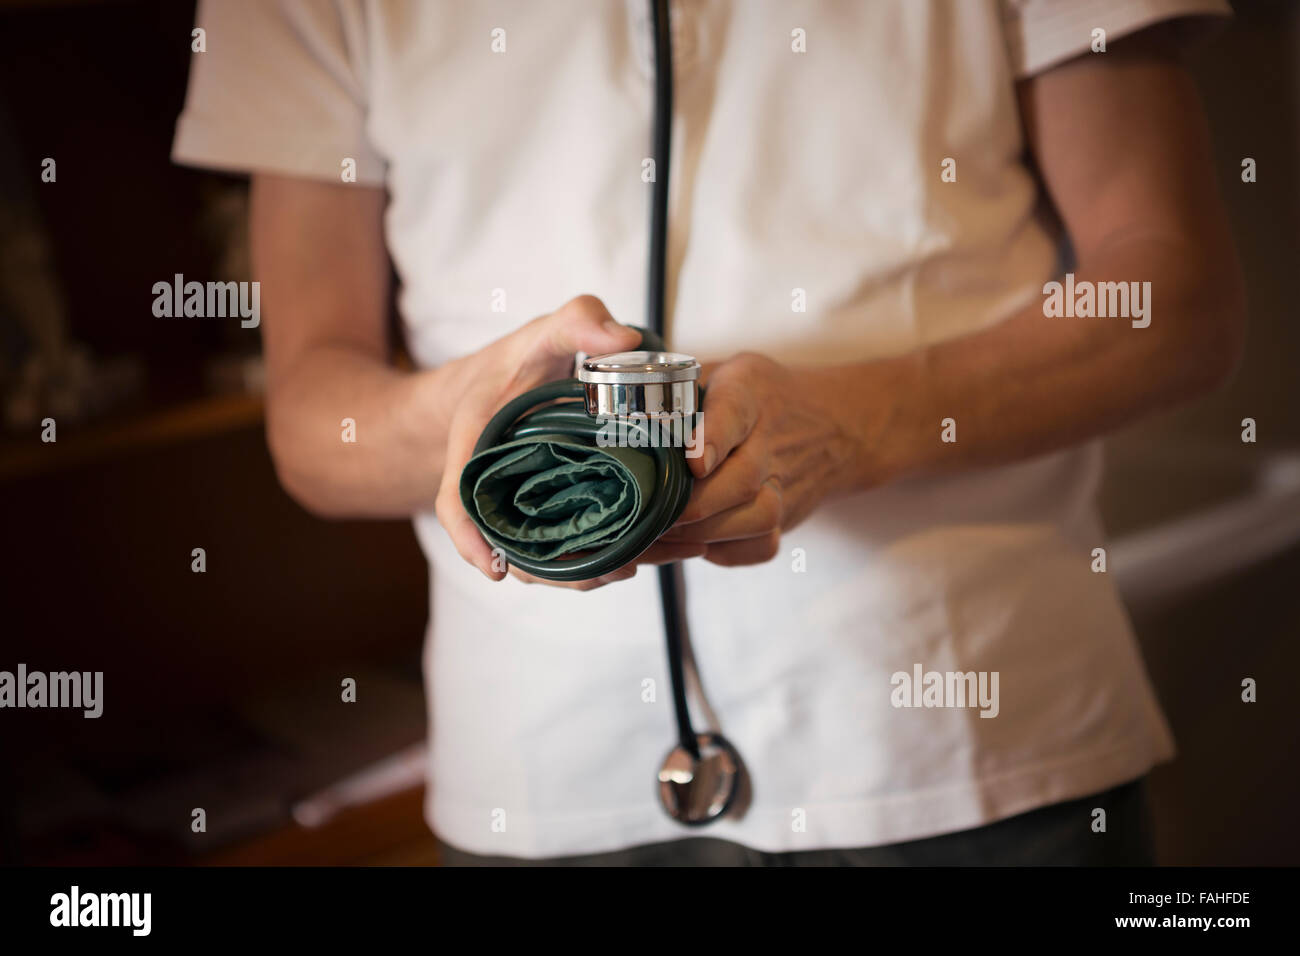 Doctor holding a blood pressure cuff and wearing a stethoscope - Stock Image